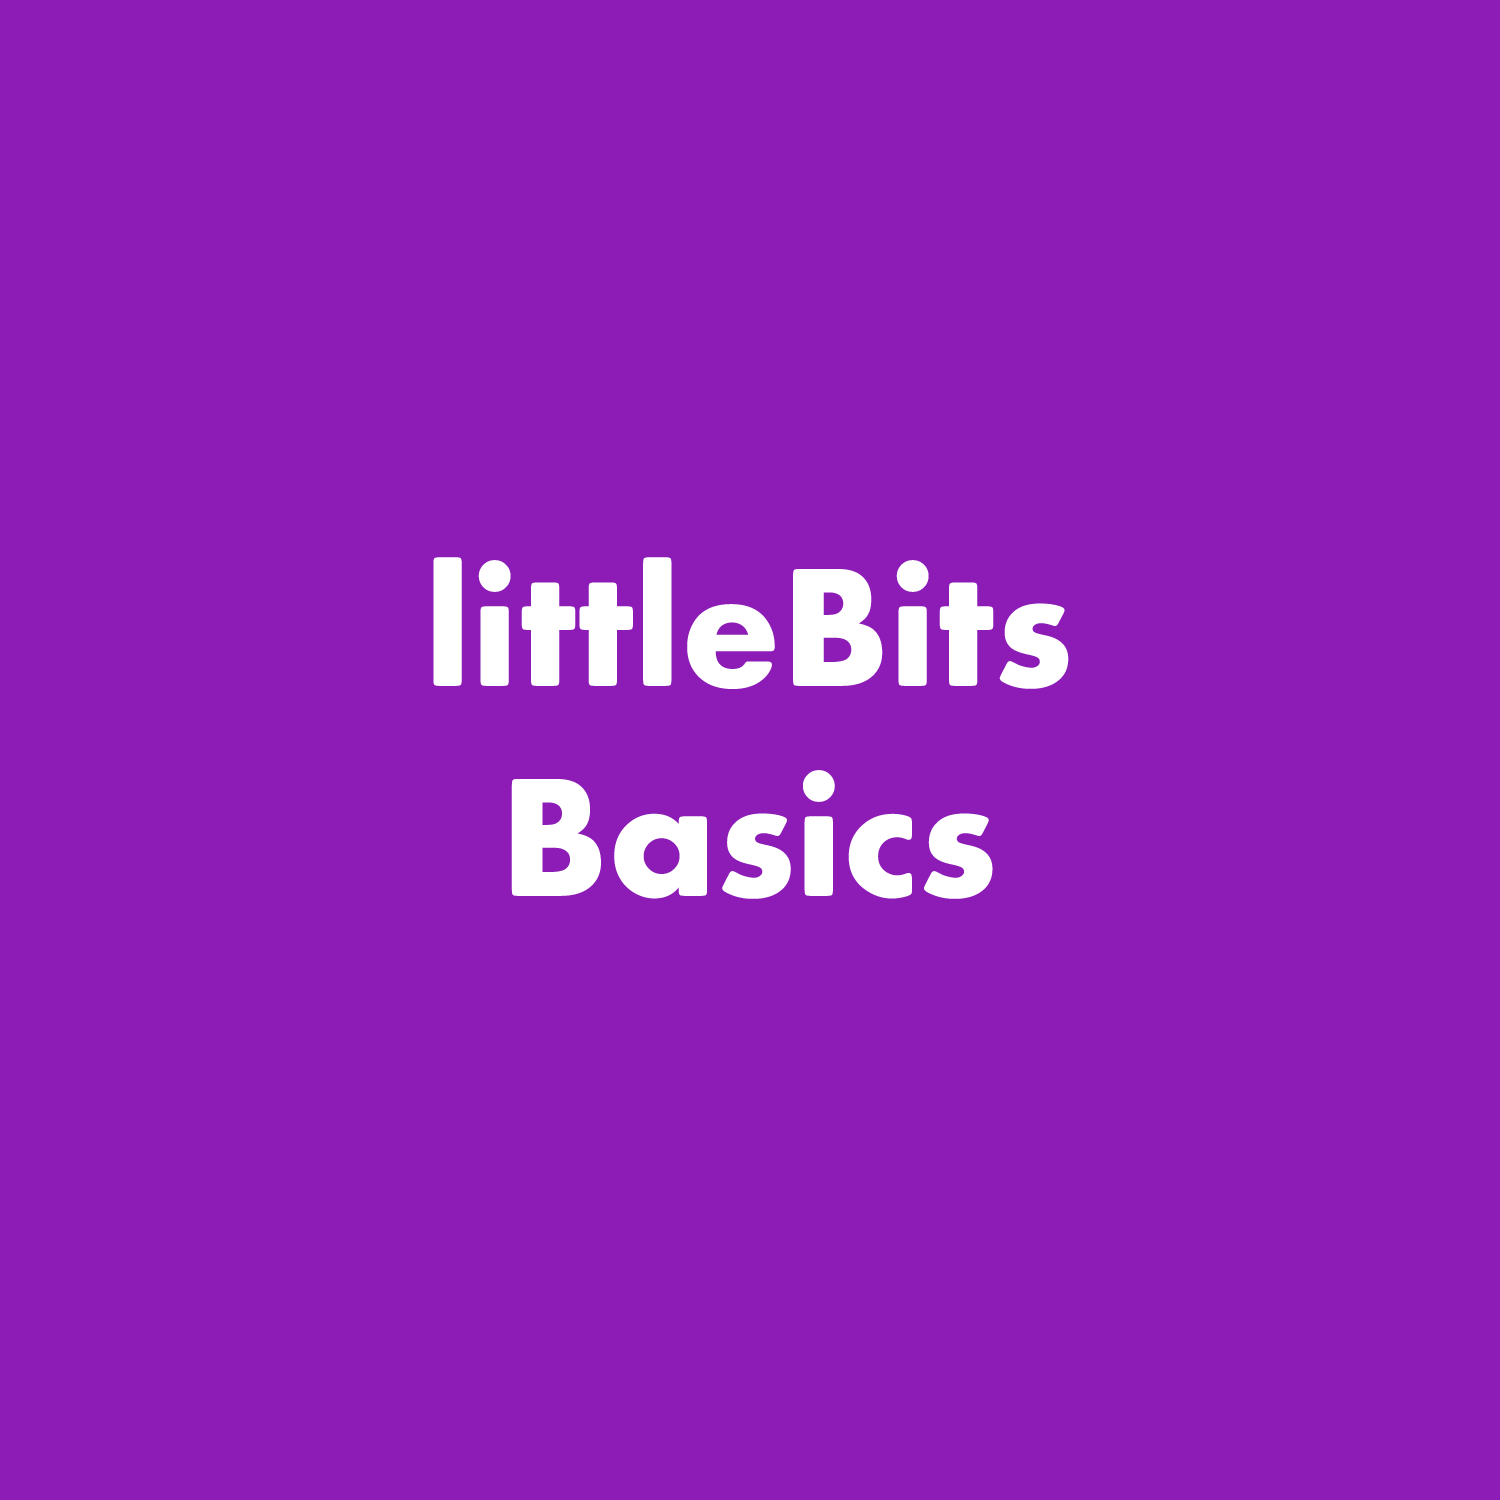 PDF: littleBits System Rules